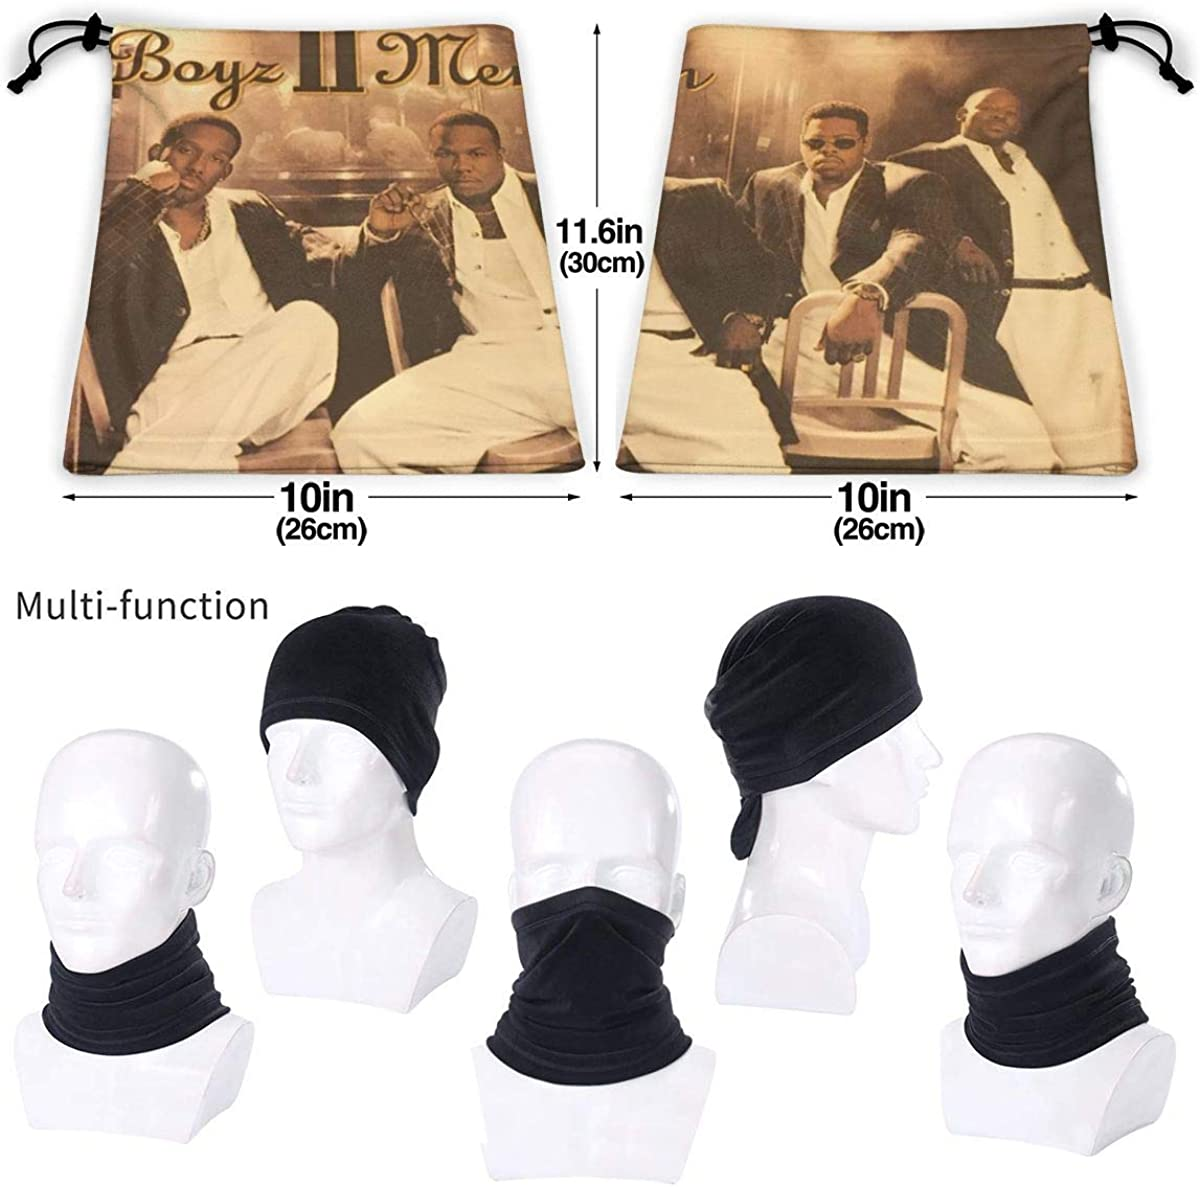 Boyz Ii Men Unisex Comfortable And Breathable Fashion Scarf Face Tube Neck Scarf Neck Warm Scarf